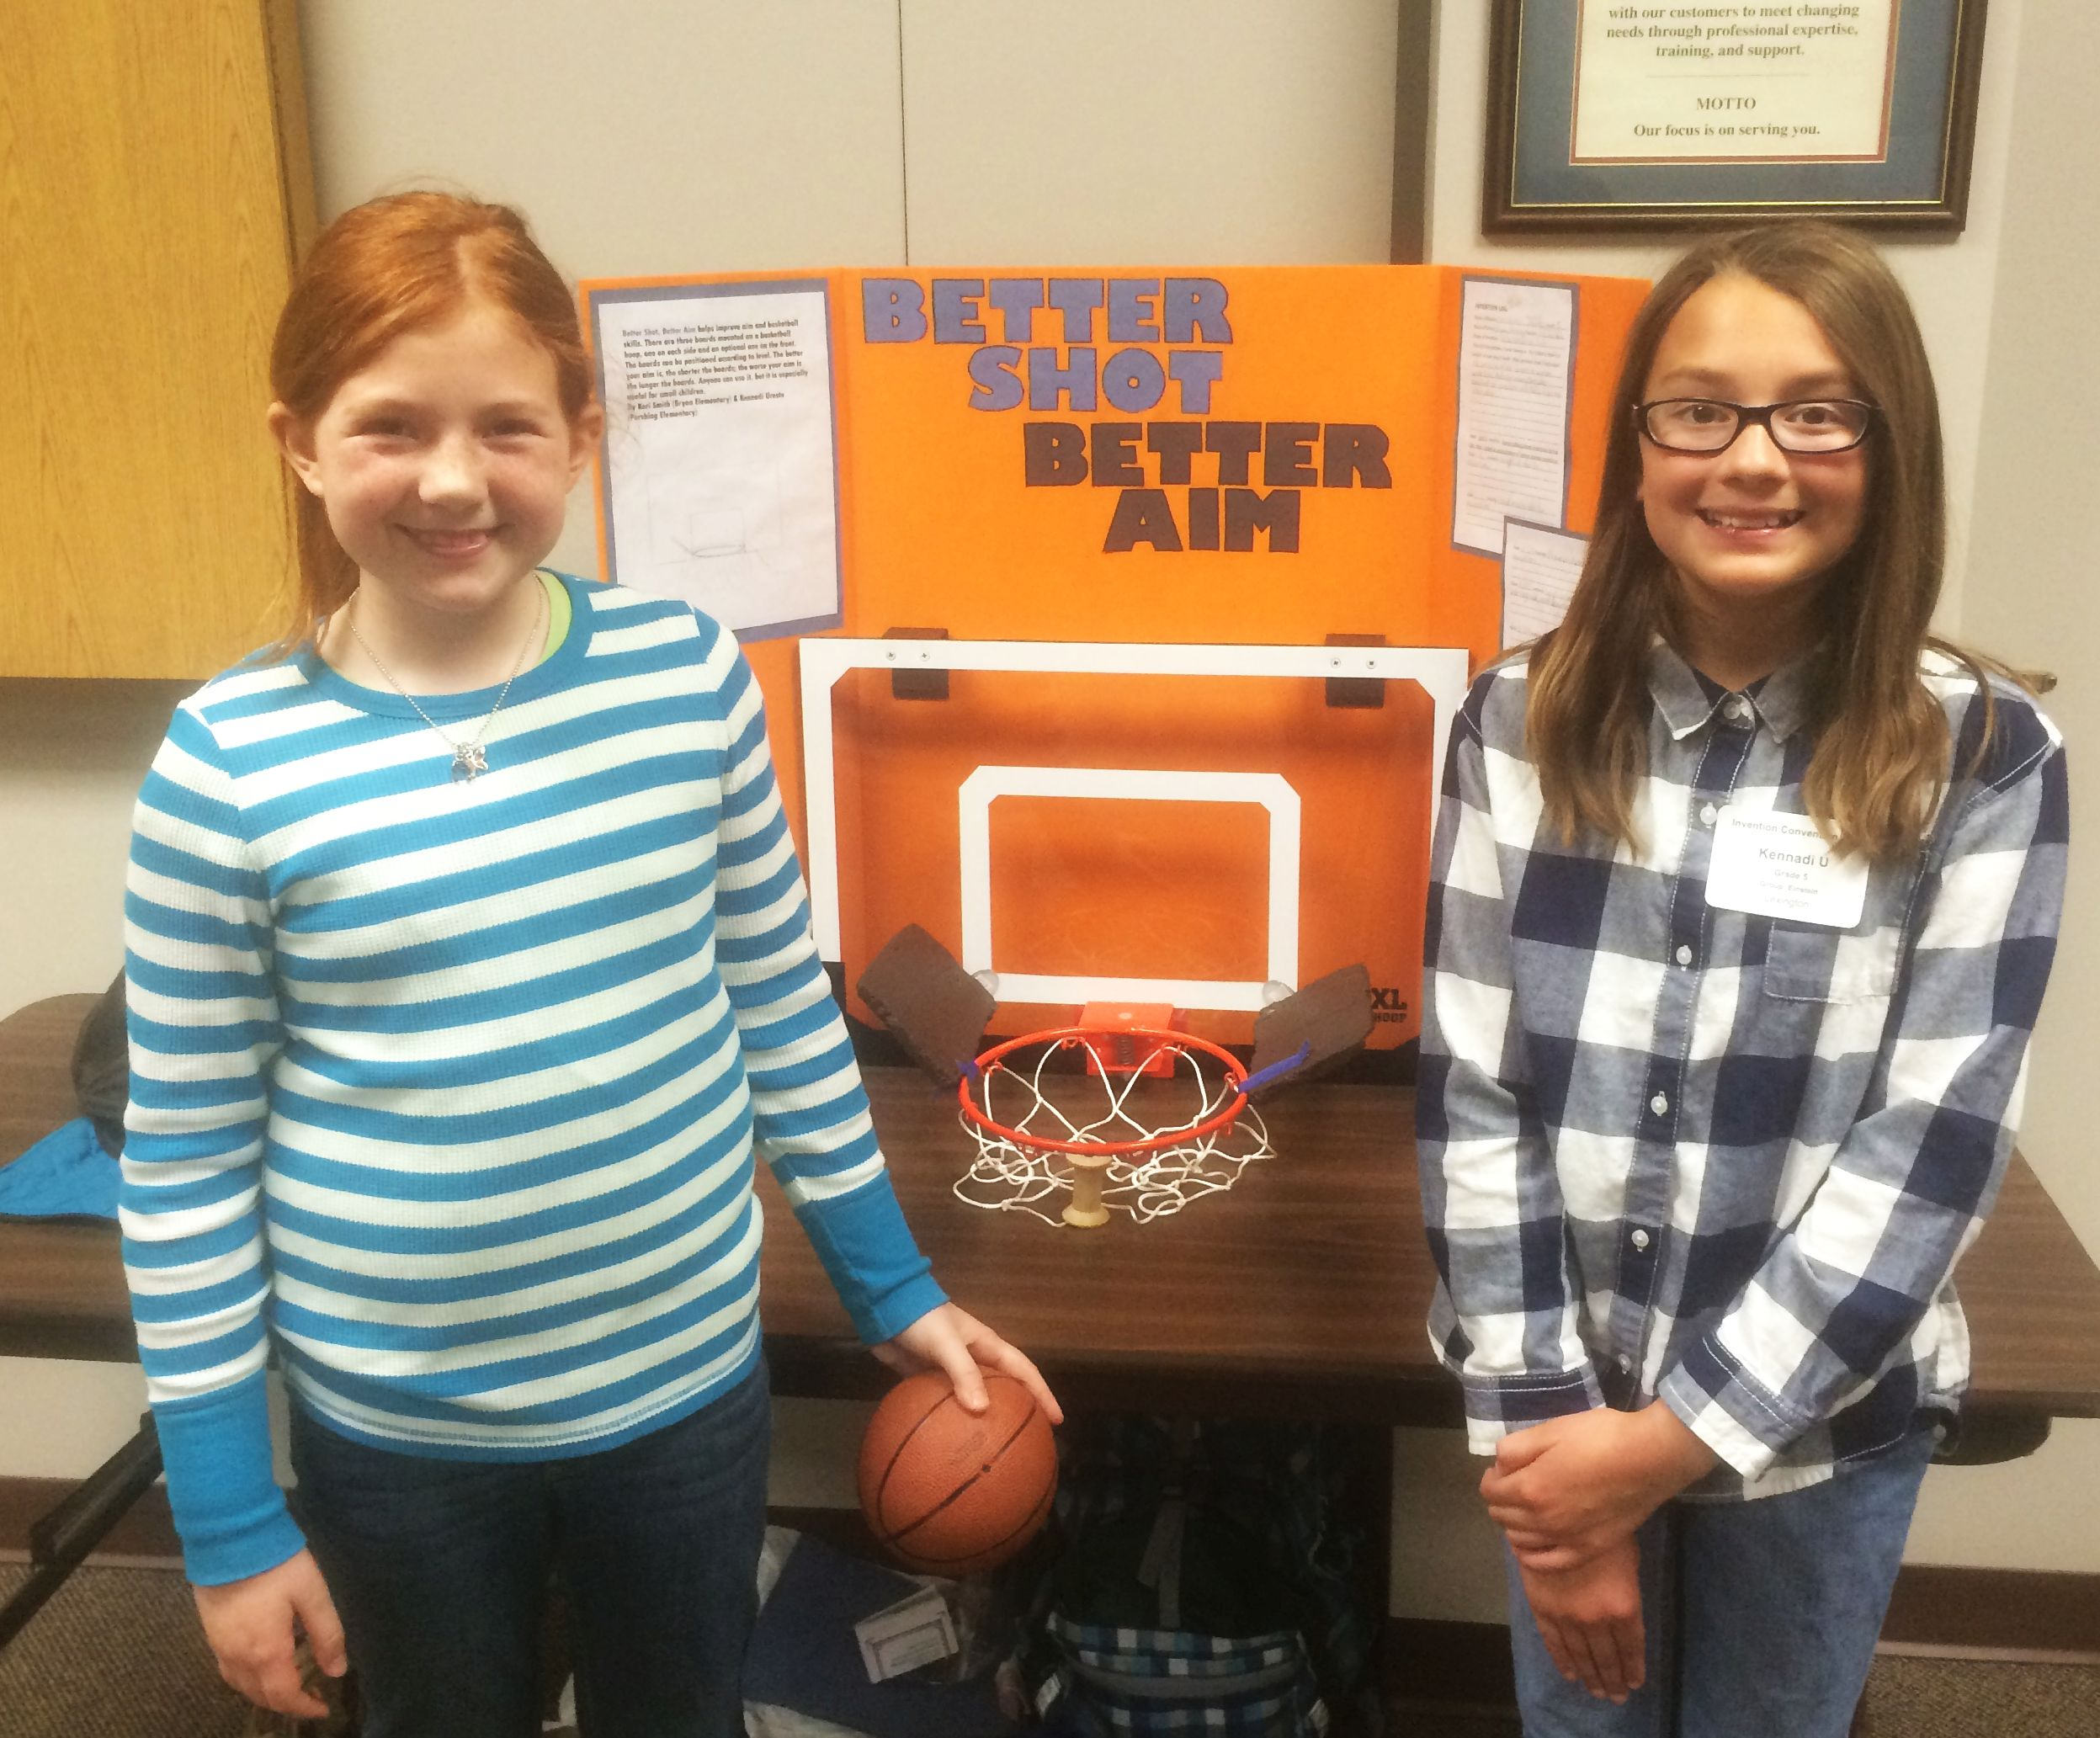 Rrn Lexington 5th Graders Invent Better Shot Better Aim